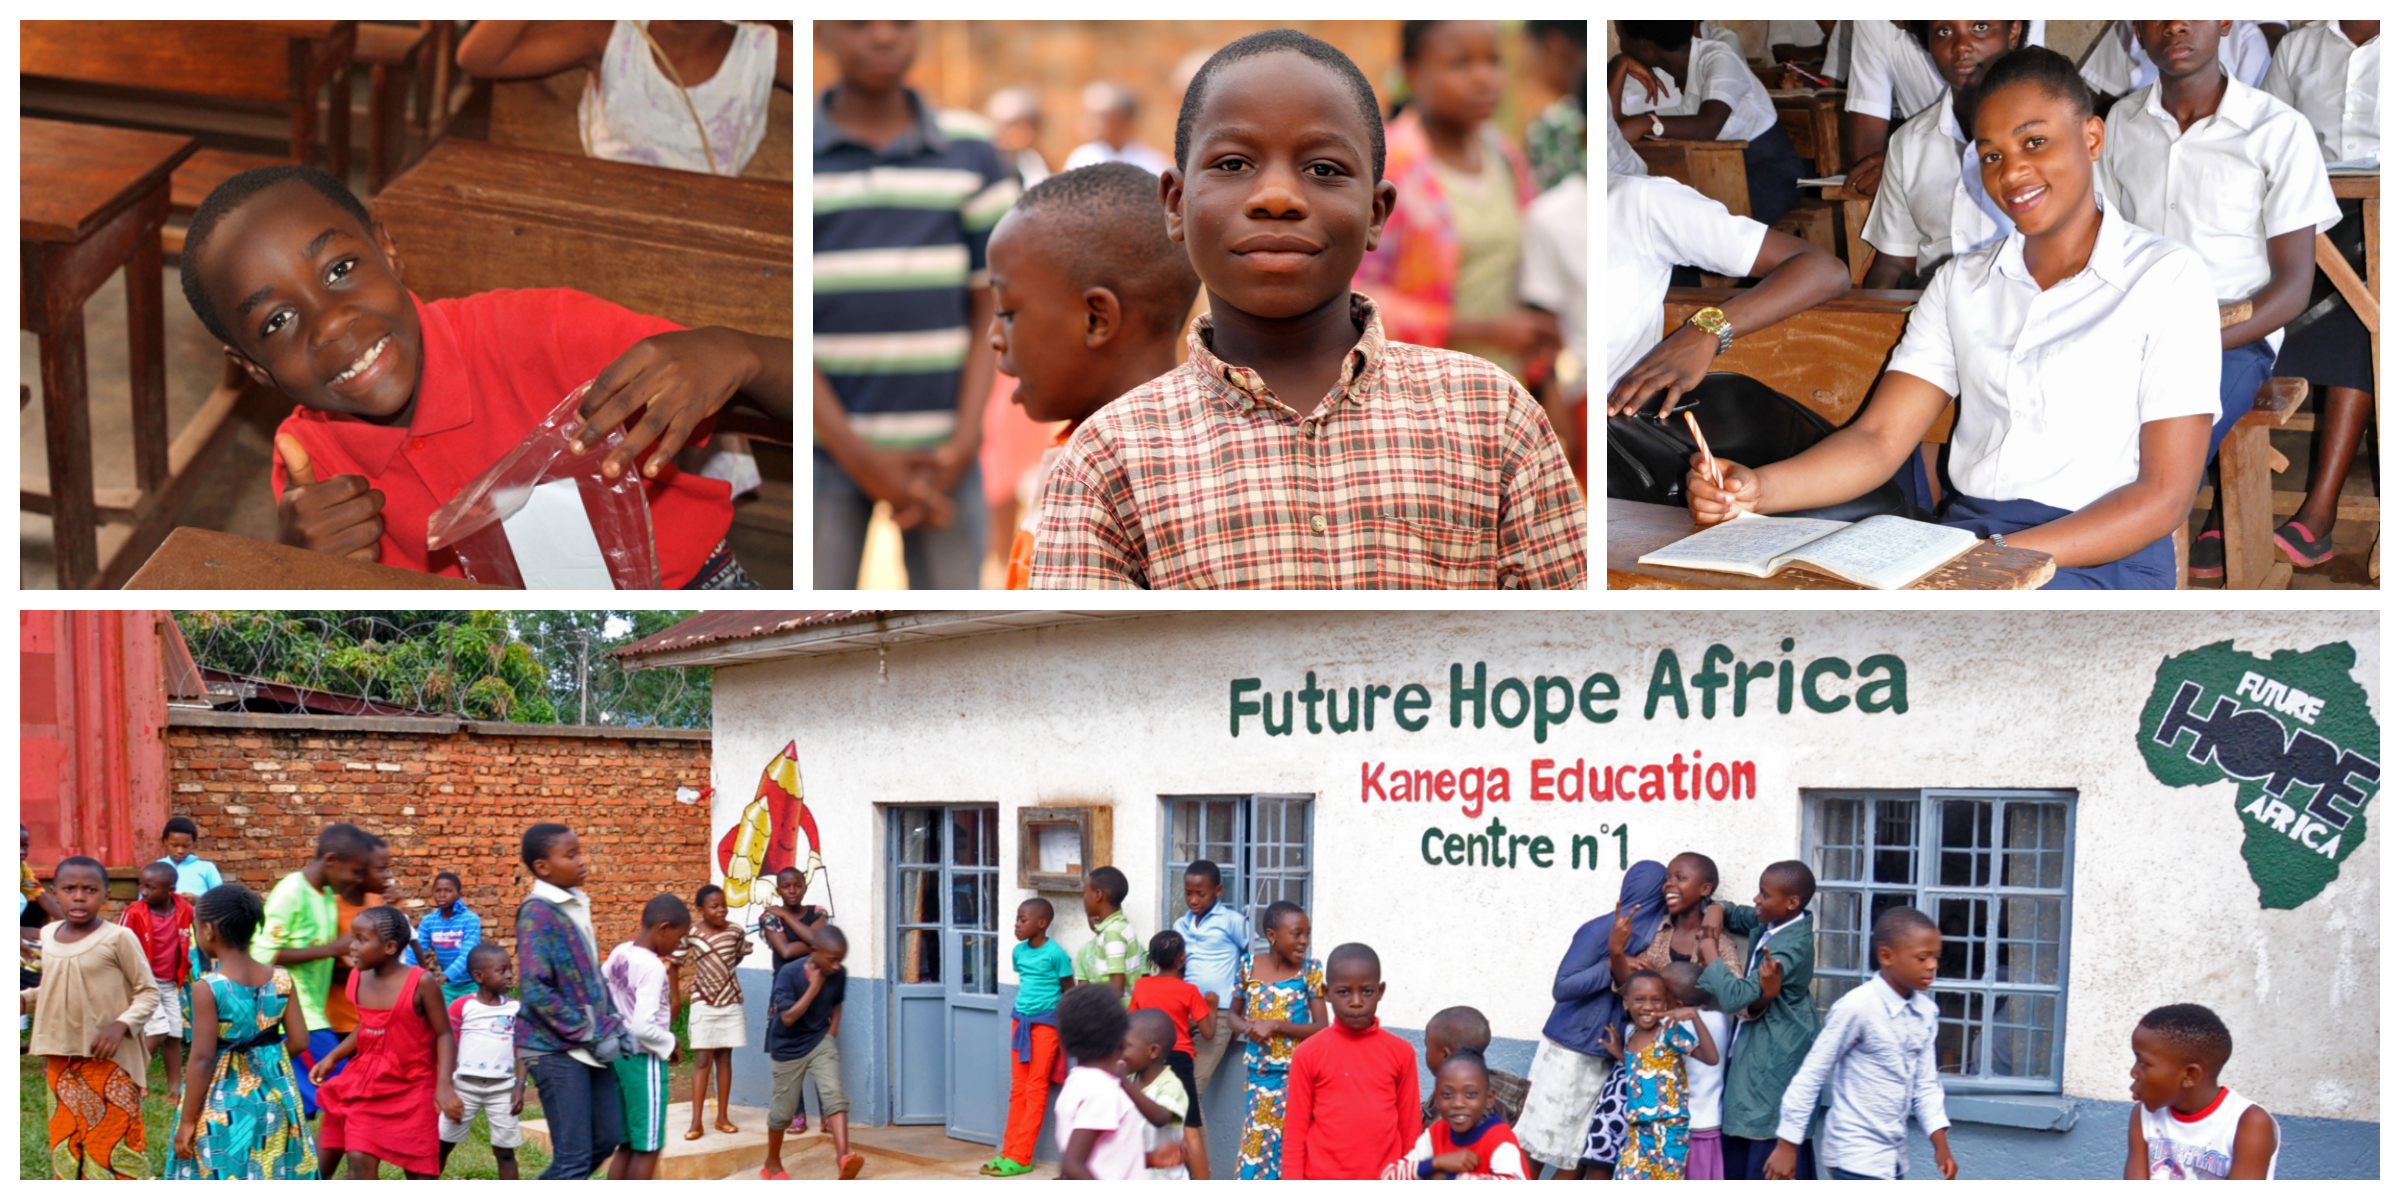 The Future Hope Africa Kanega Education Center, Bukavu, Democratic Republic of the Congo